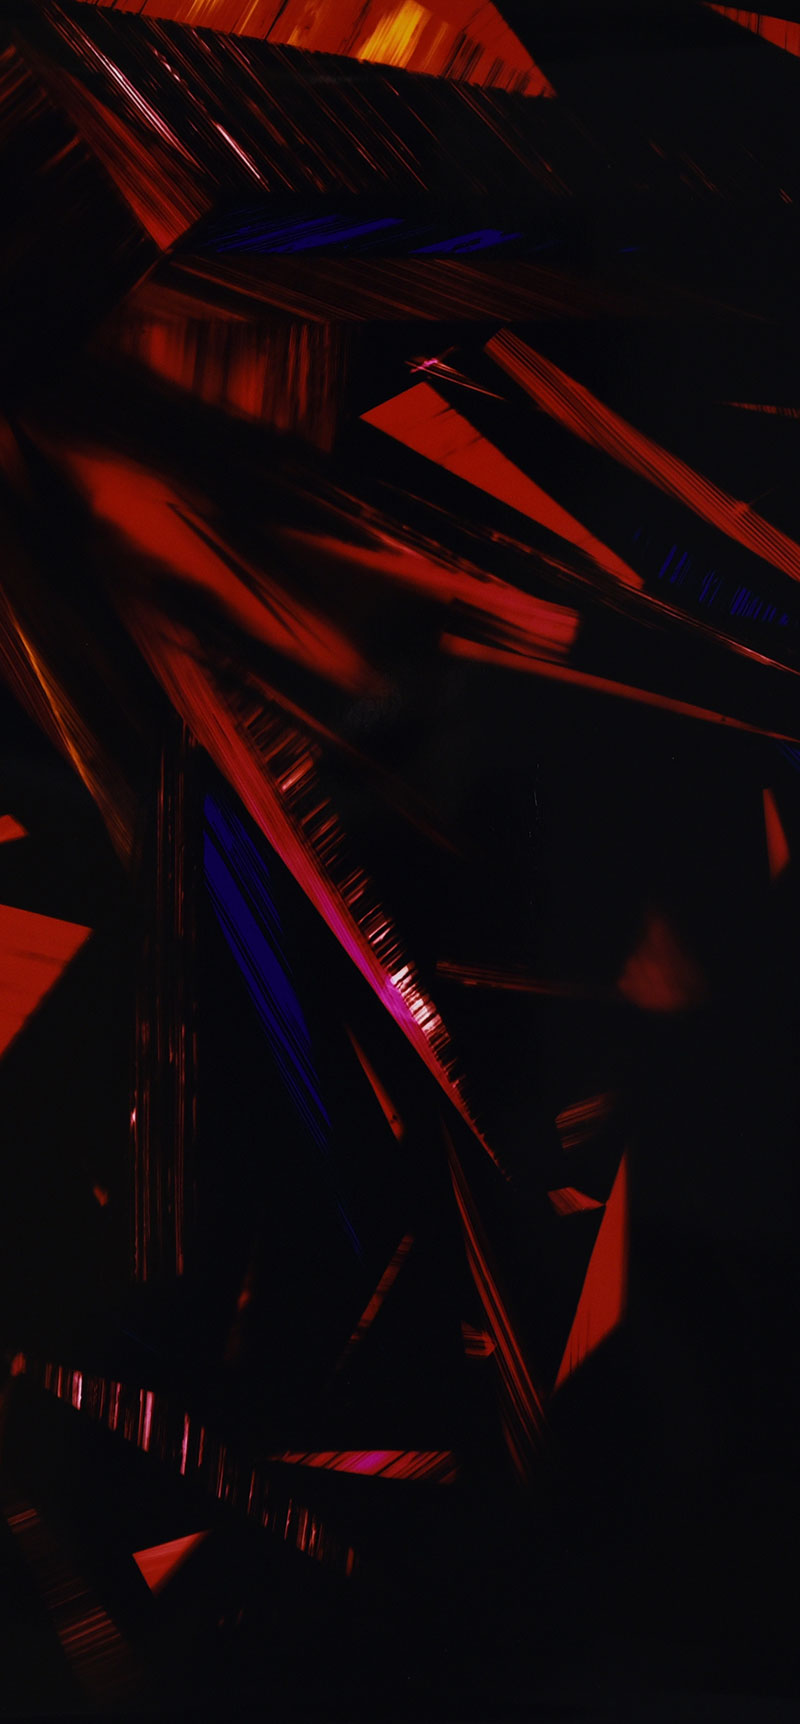 Close up detail of color photogram titled: Crimson Belligerence